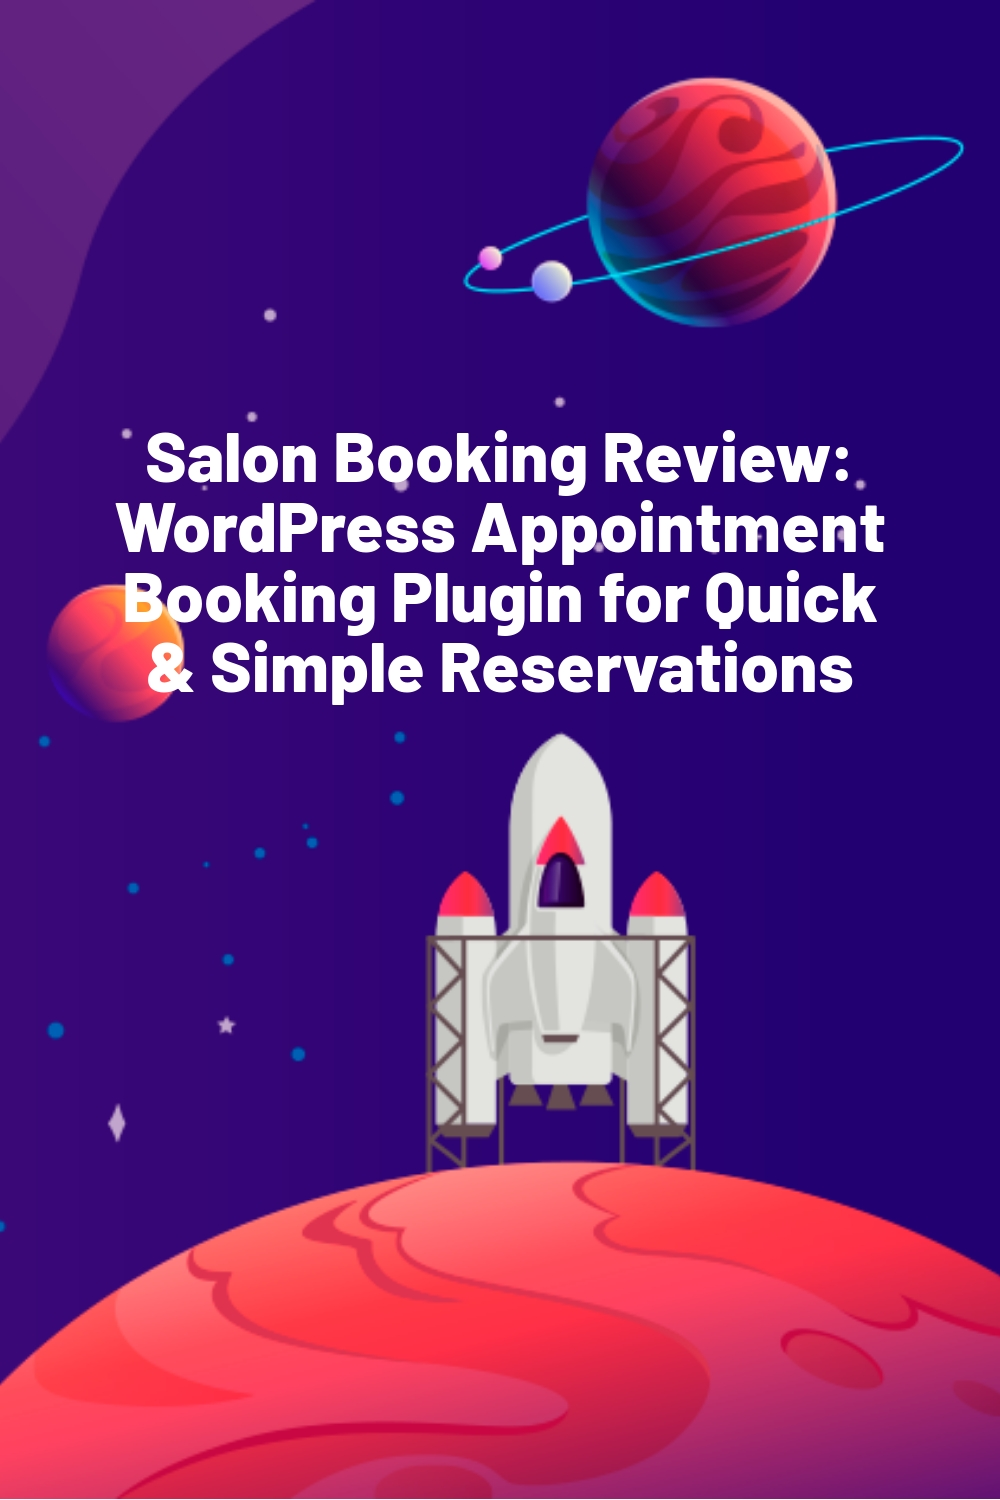 Salon Booking Review: WordPress Appointment Booking Plugin for Quick & Simple Reservations